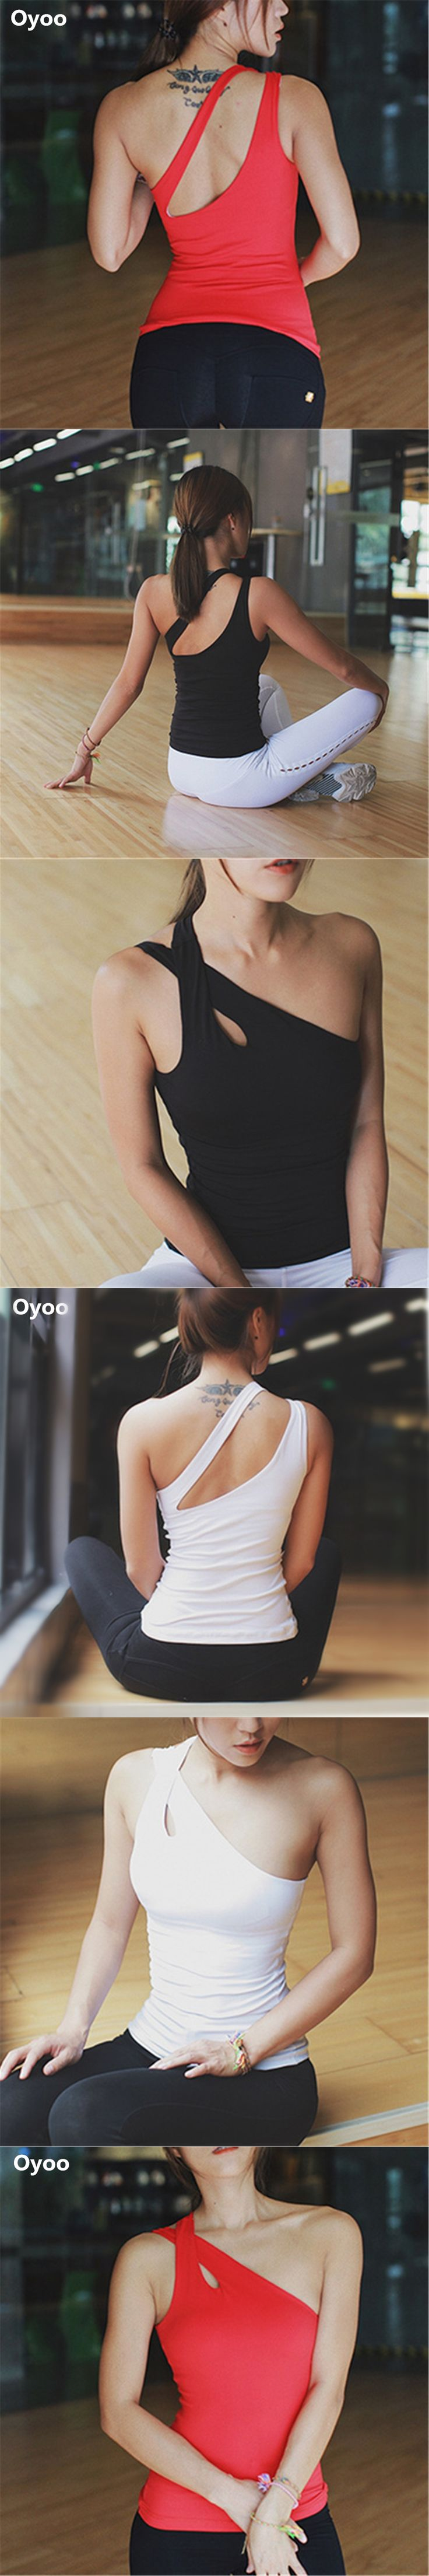 Oyoo one-shoulder red padded yoga tops women's sleeveless sport fitness tank top running shirts white gym clothes sexy vest